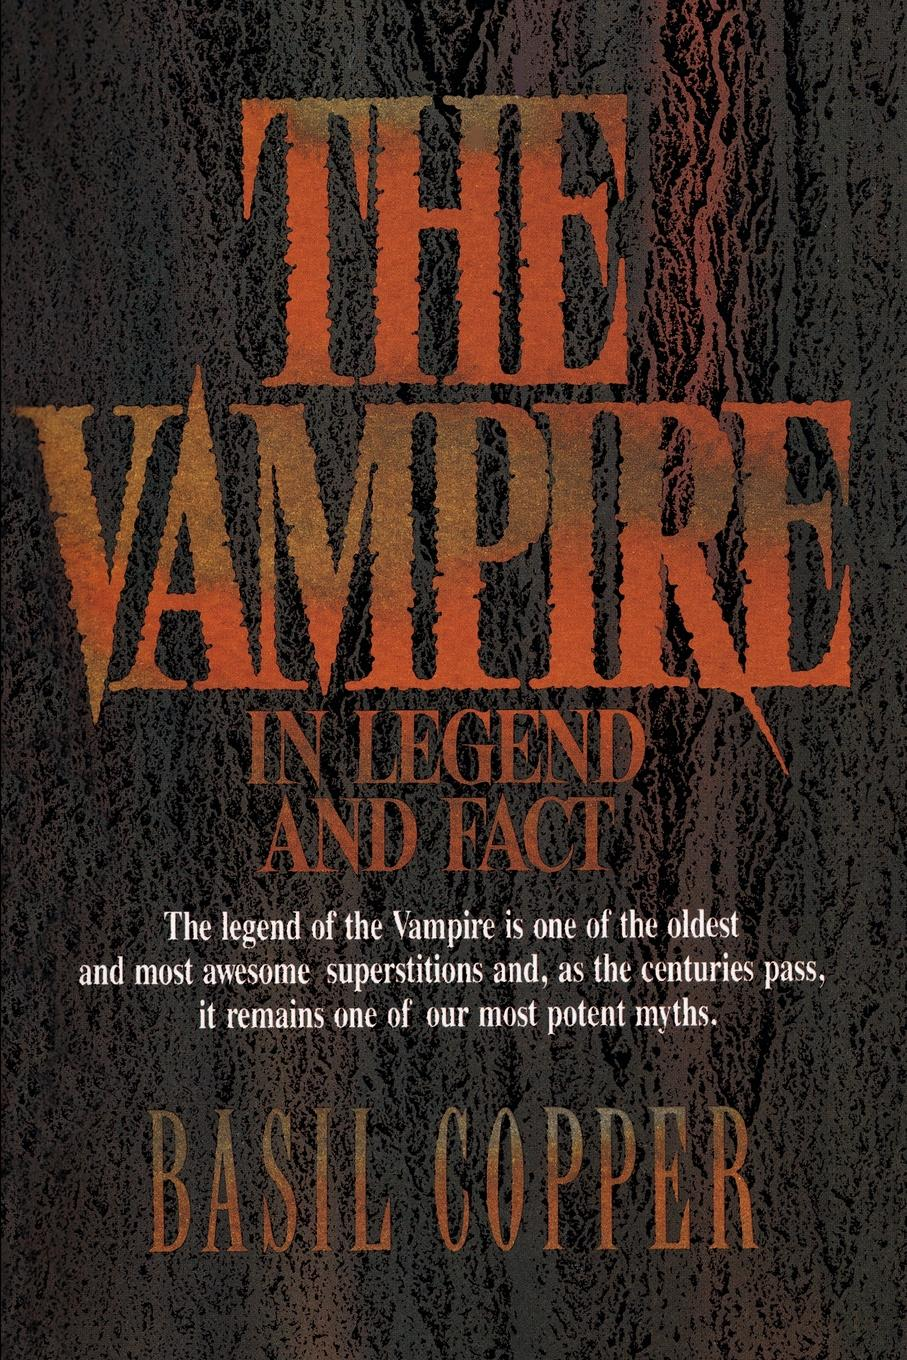 Basil Copper The Vampire. In Legend and Fact the vampire s betrayal